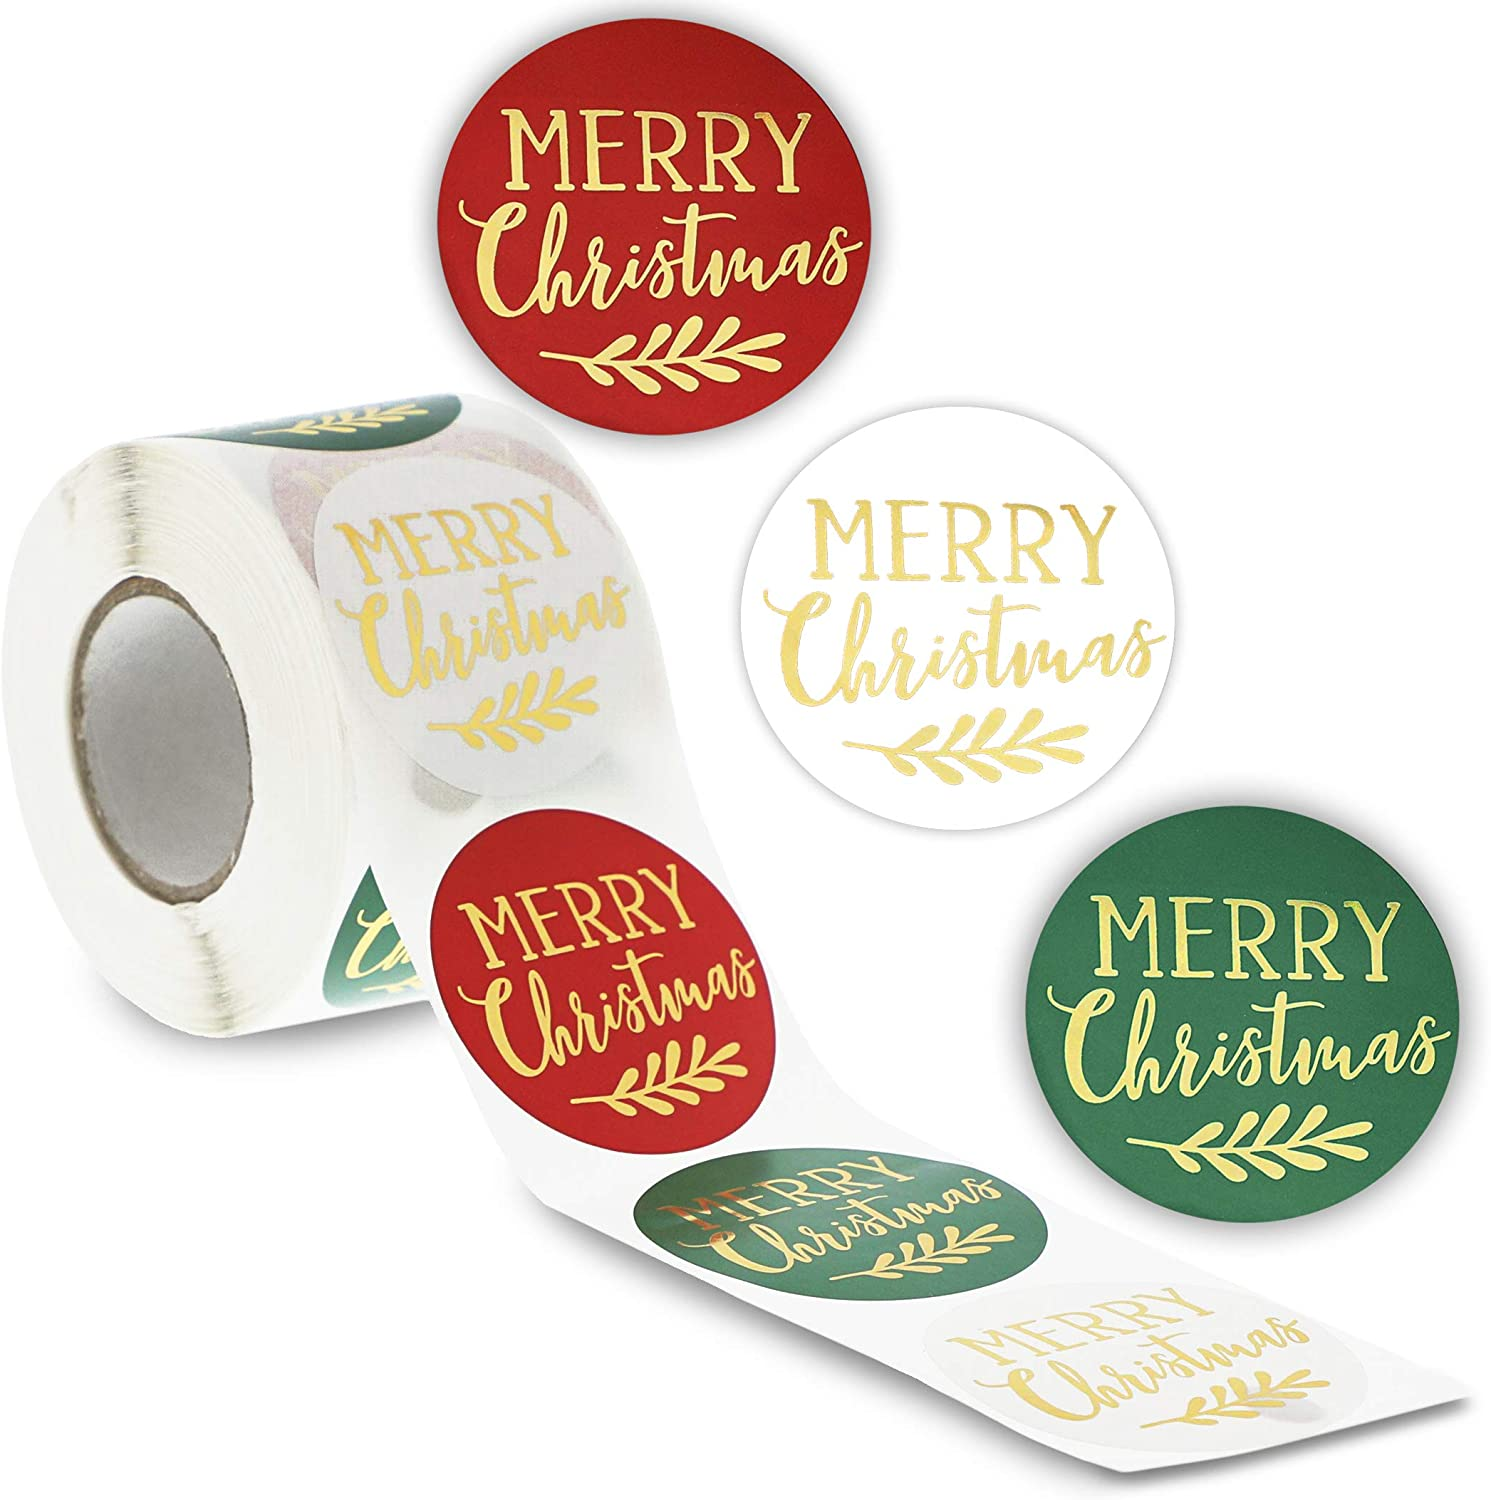 2 Inches, 500 Pieces Merry Christmas Gold Foil Envelope Stickers